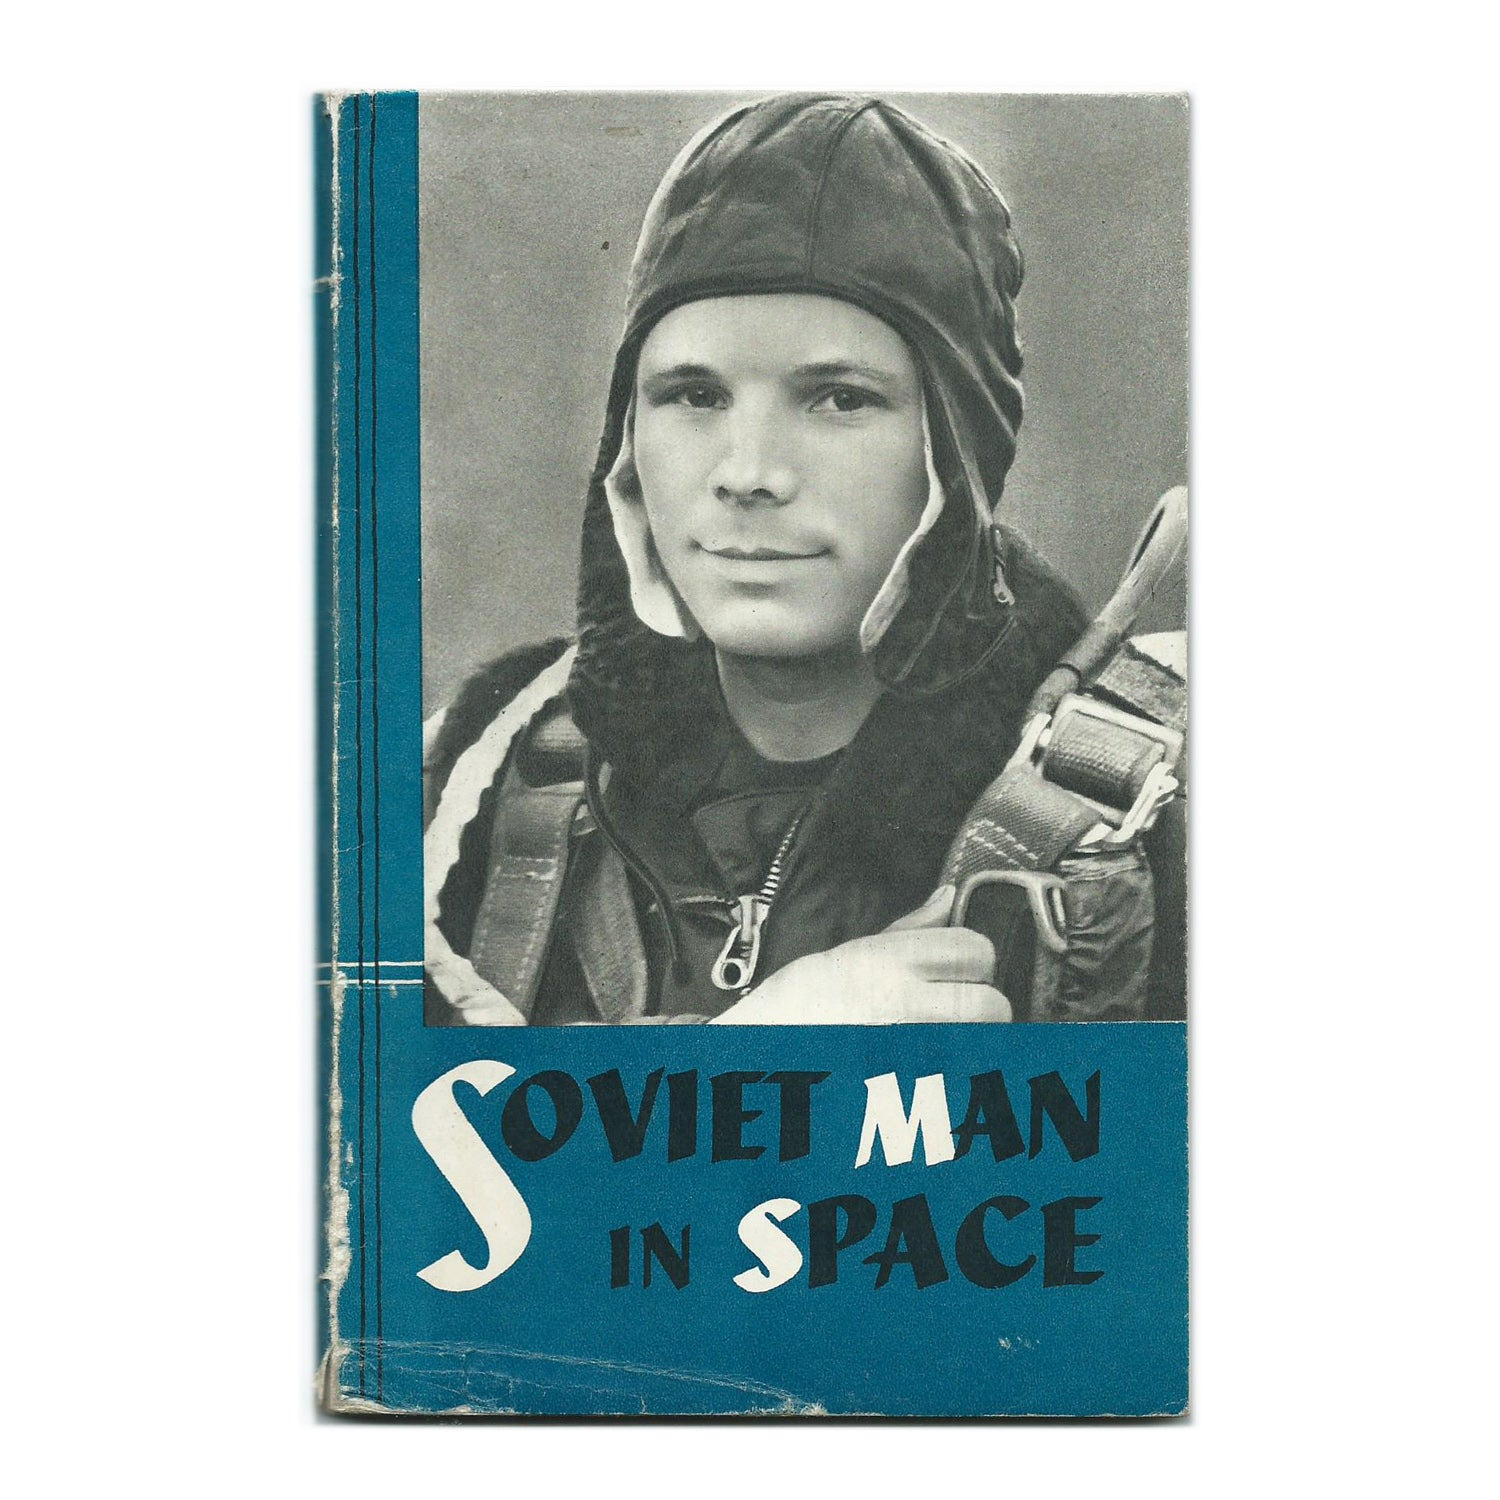 Soviet Man In Space (booklet)